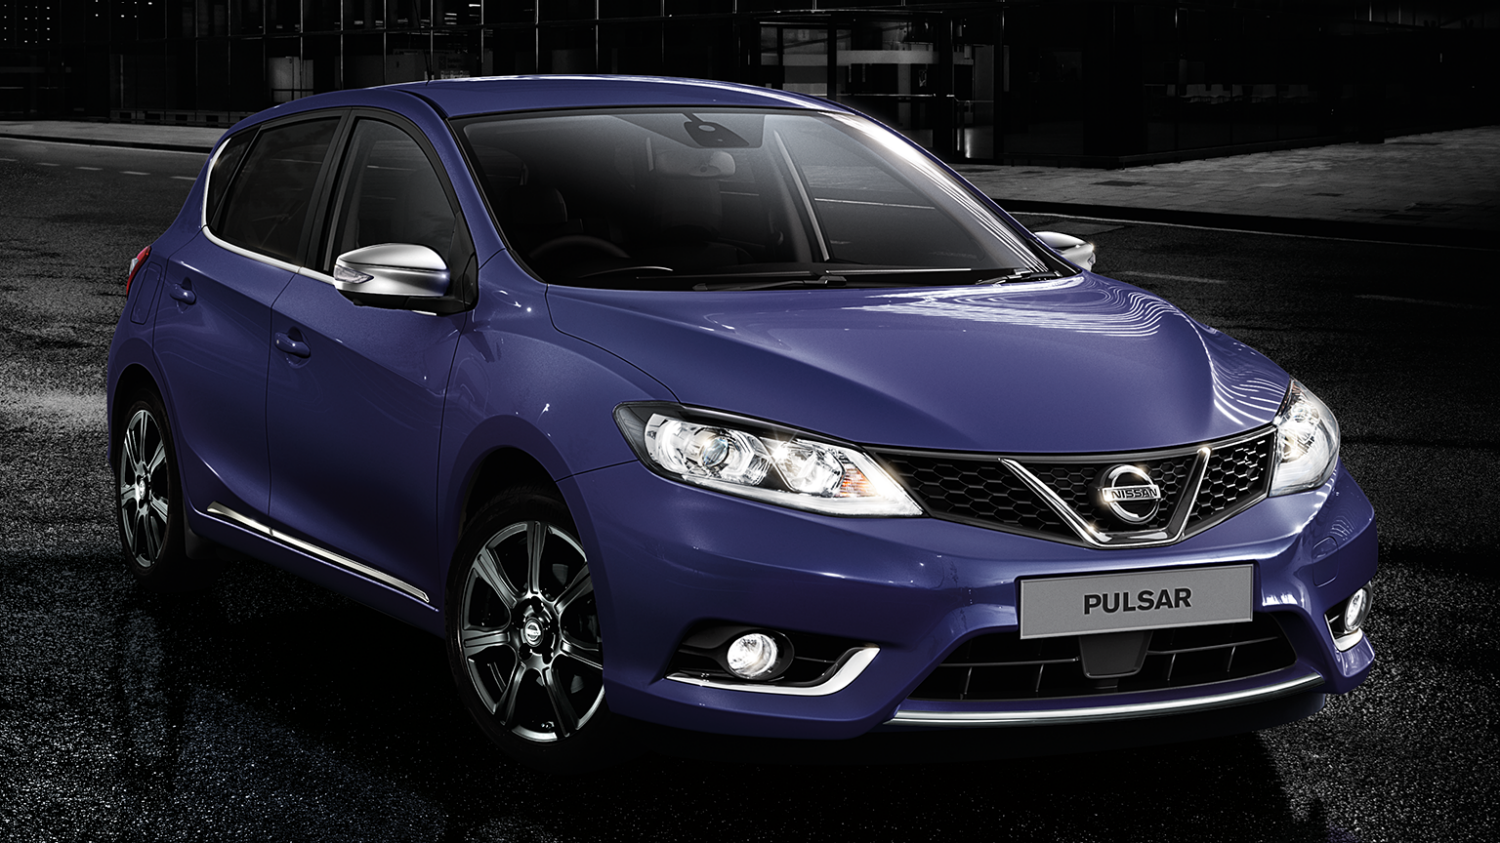 Nissan PULSAR - Hatchback - Family Car | Nissan